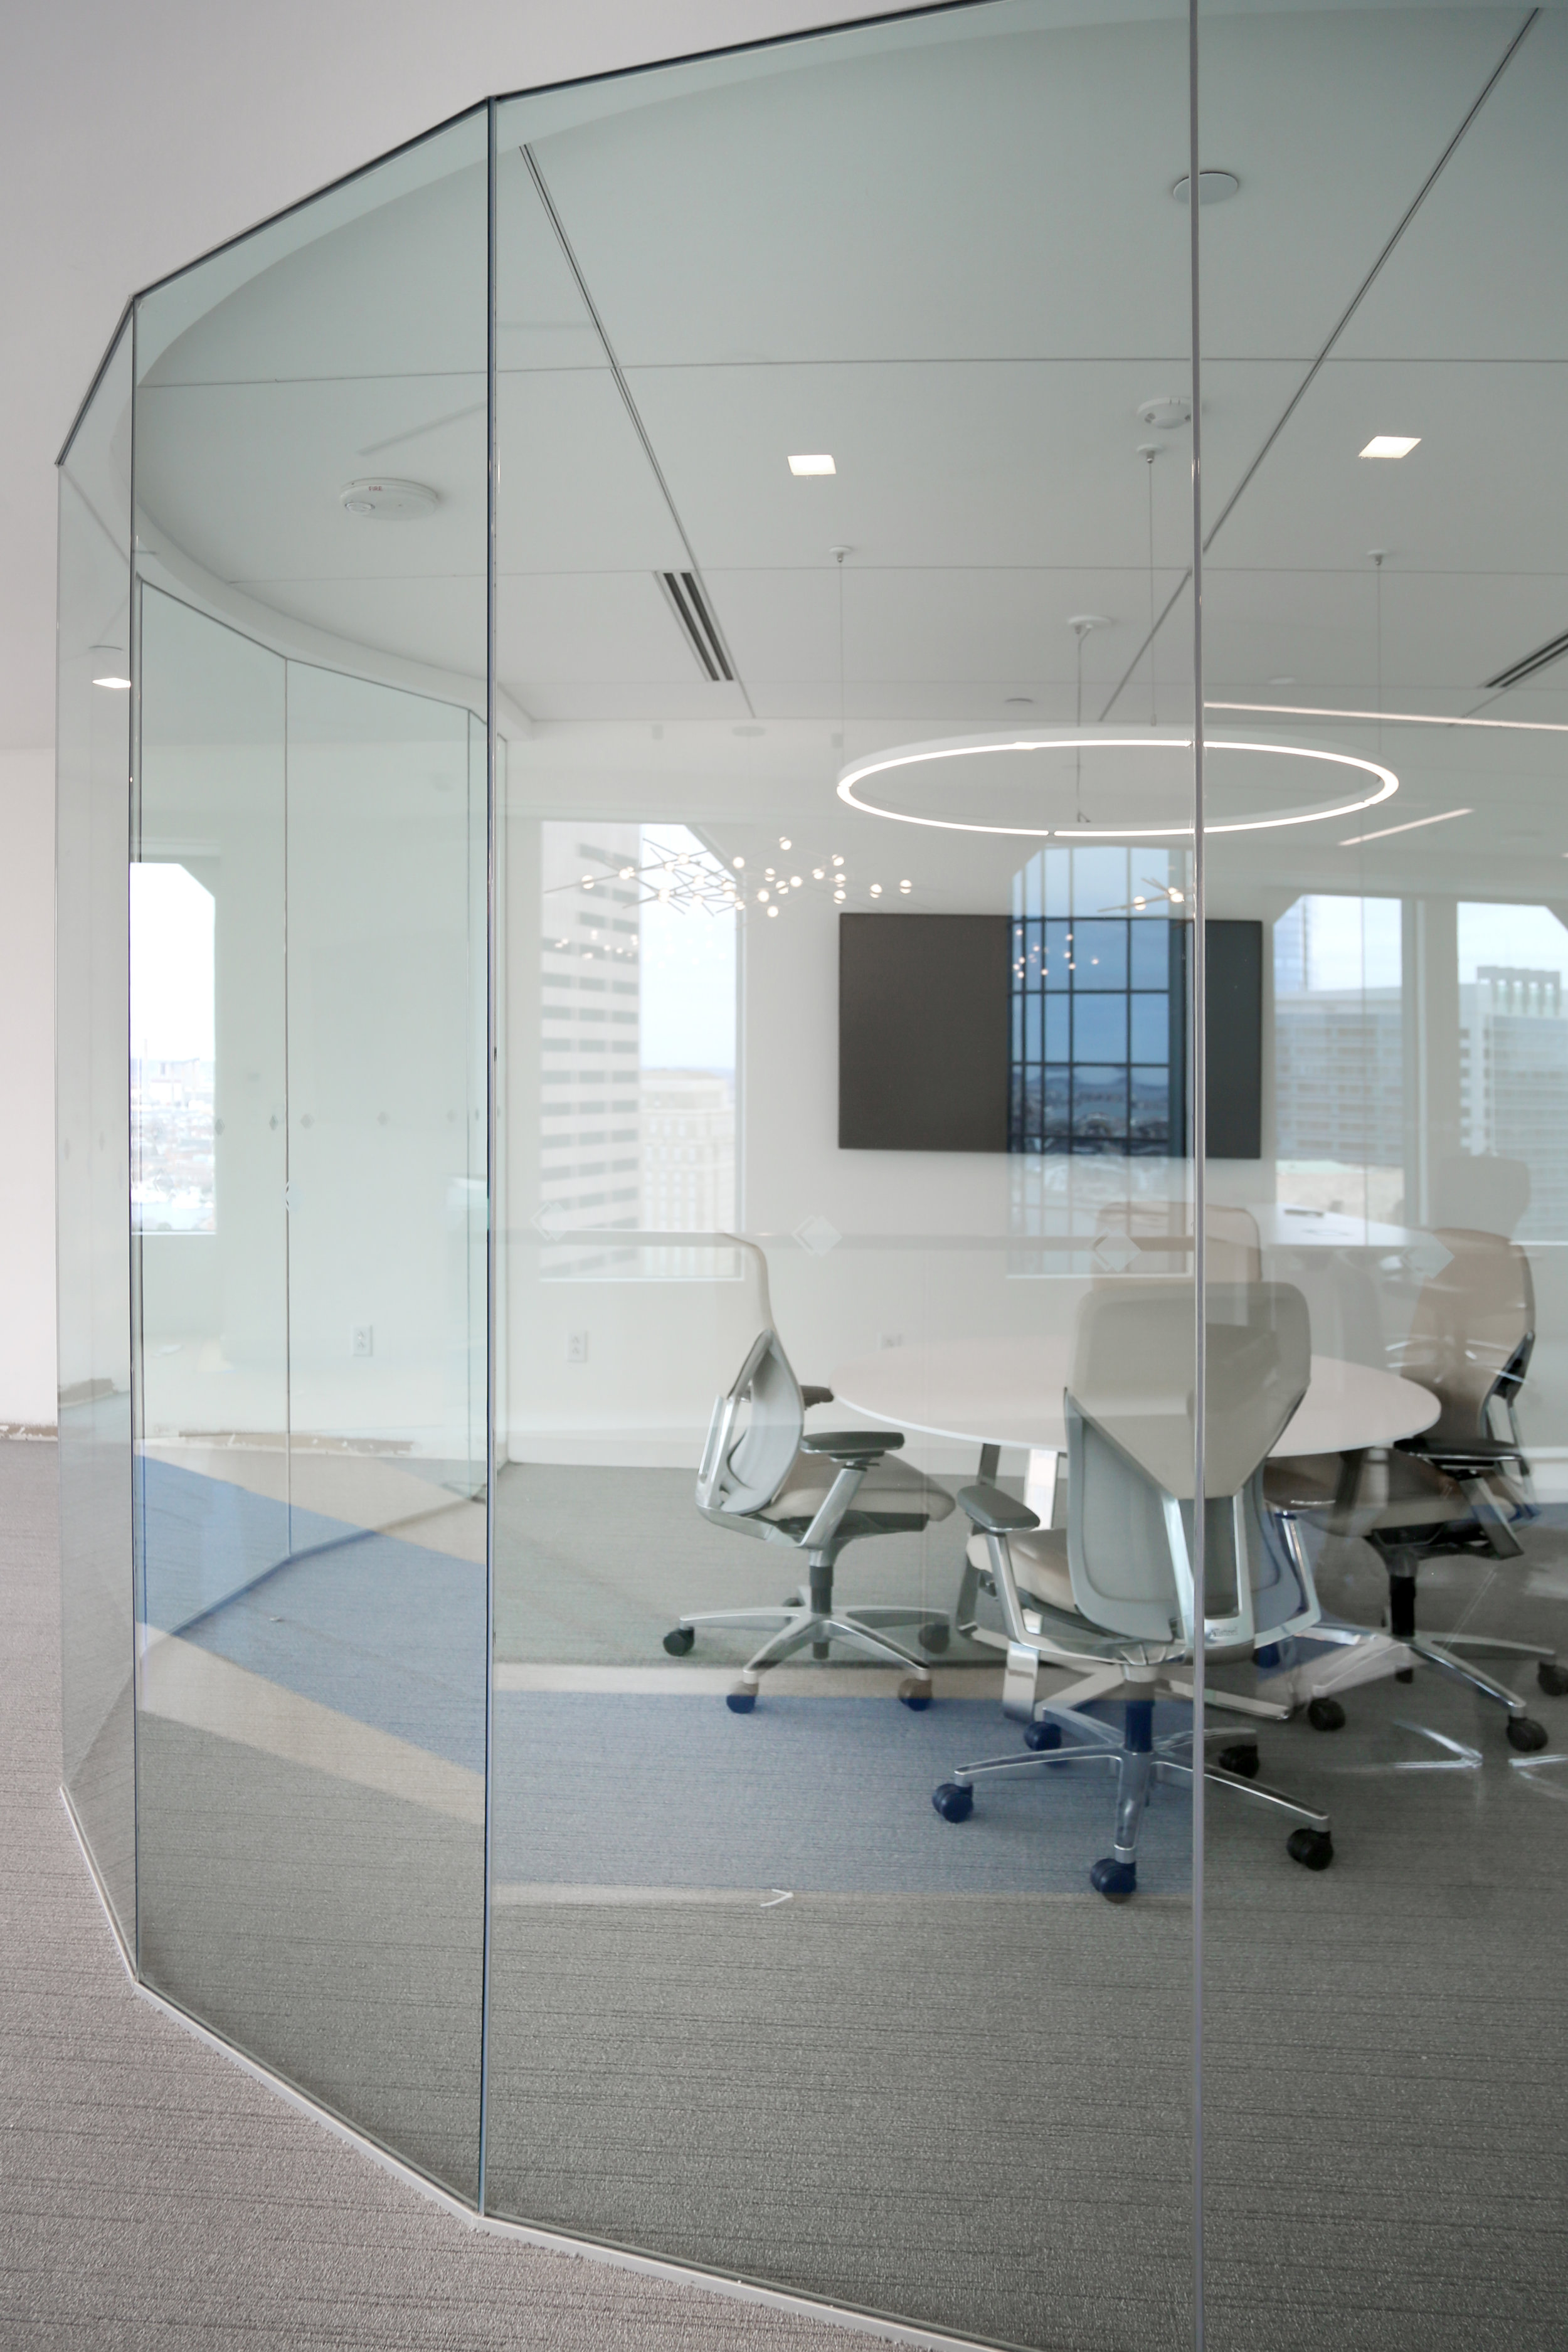 Illume Frameless Glass Curved Stick-Built Faceted Wall System - Spaceworks AI.jpg